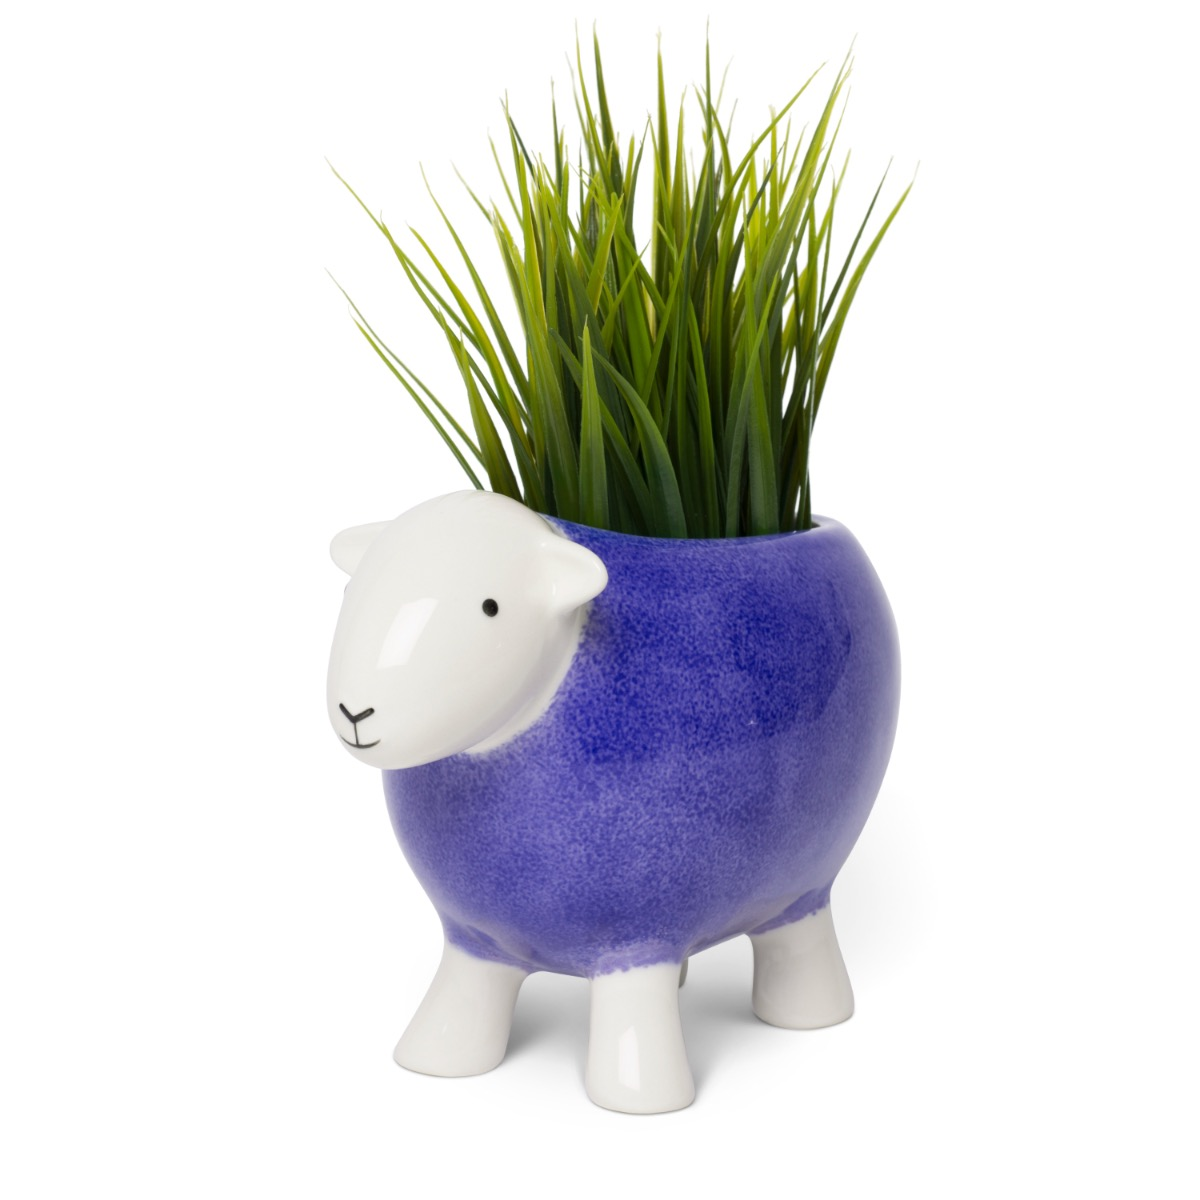 Planter - Purple